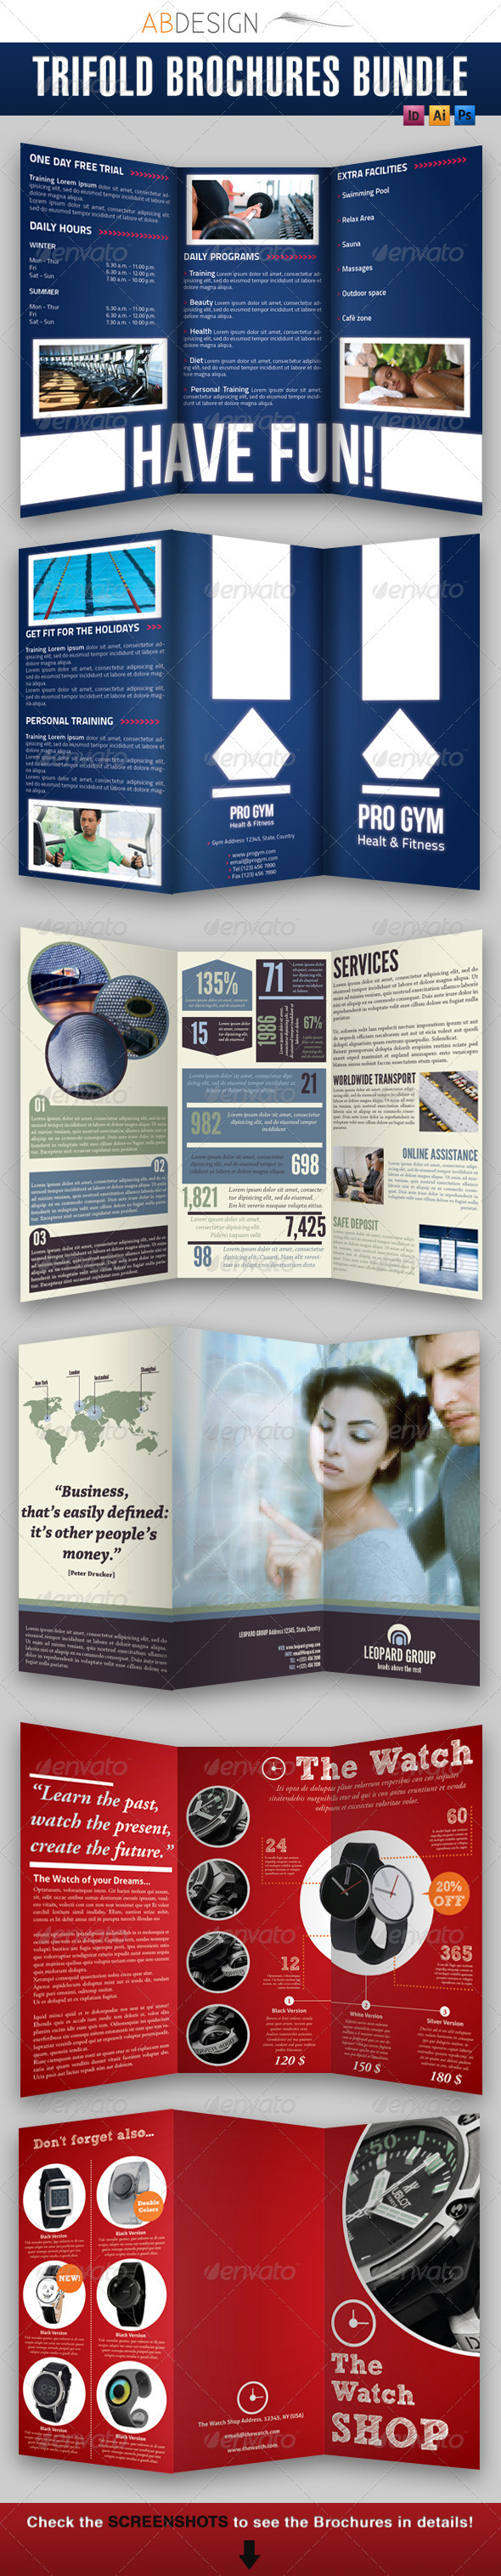 GraphicRiver Trifold Brochures Bundle 2 1392525